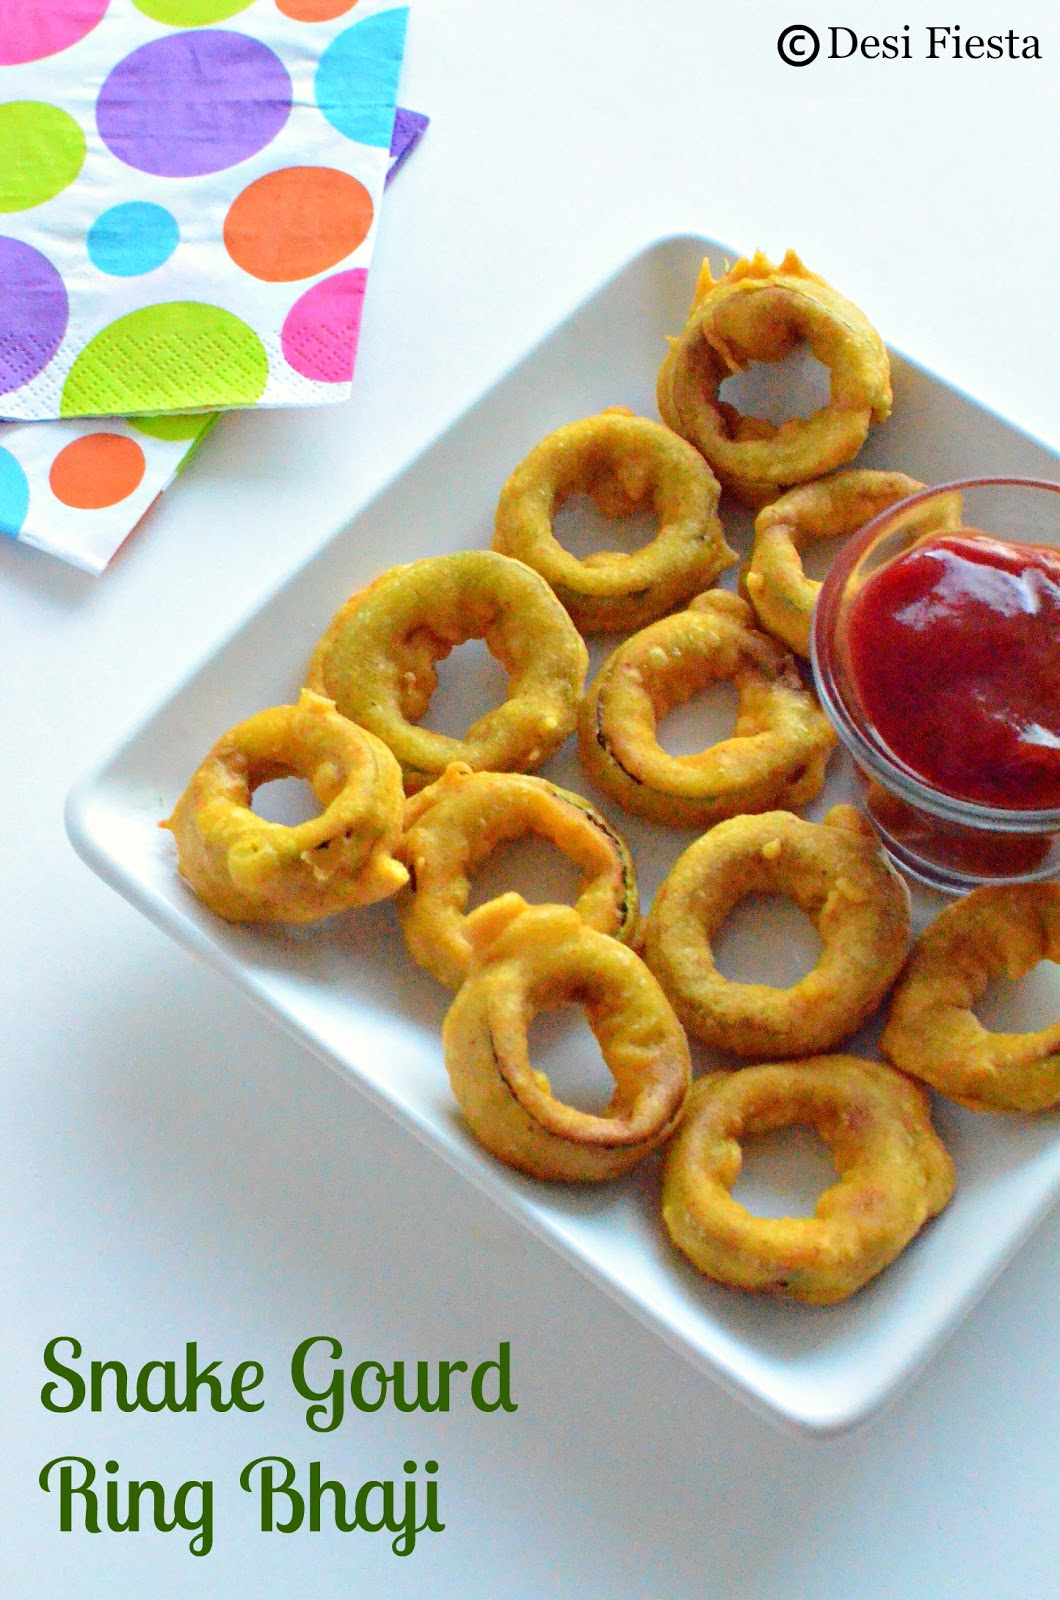 Fried Snack recipes